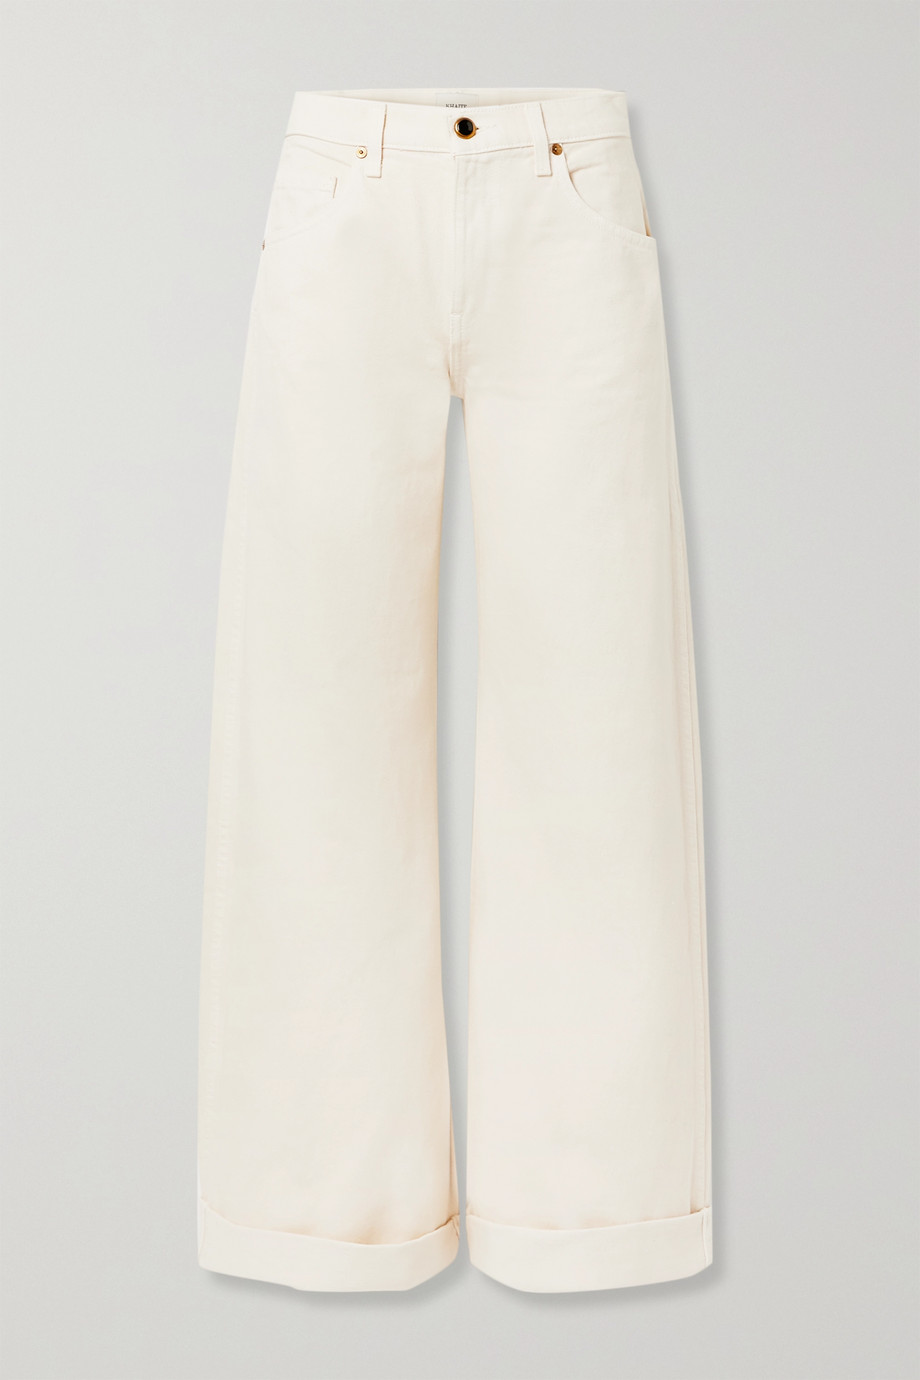 Khaite Noelle cropped high-rise wide-leg jeans